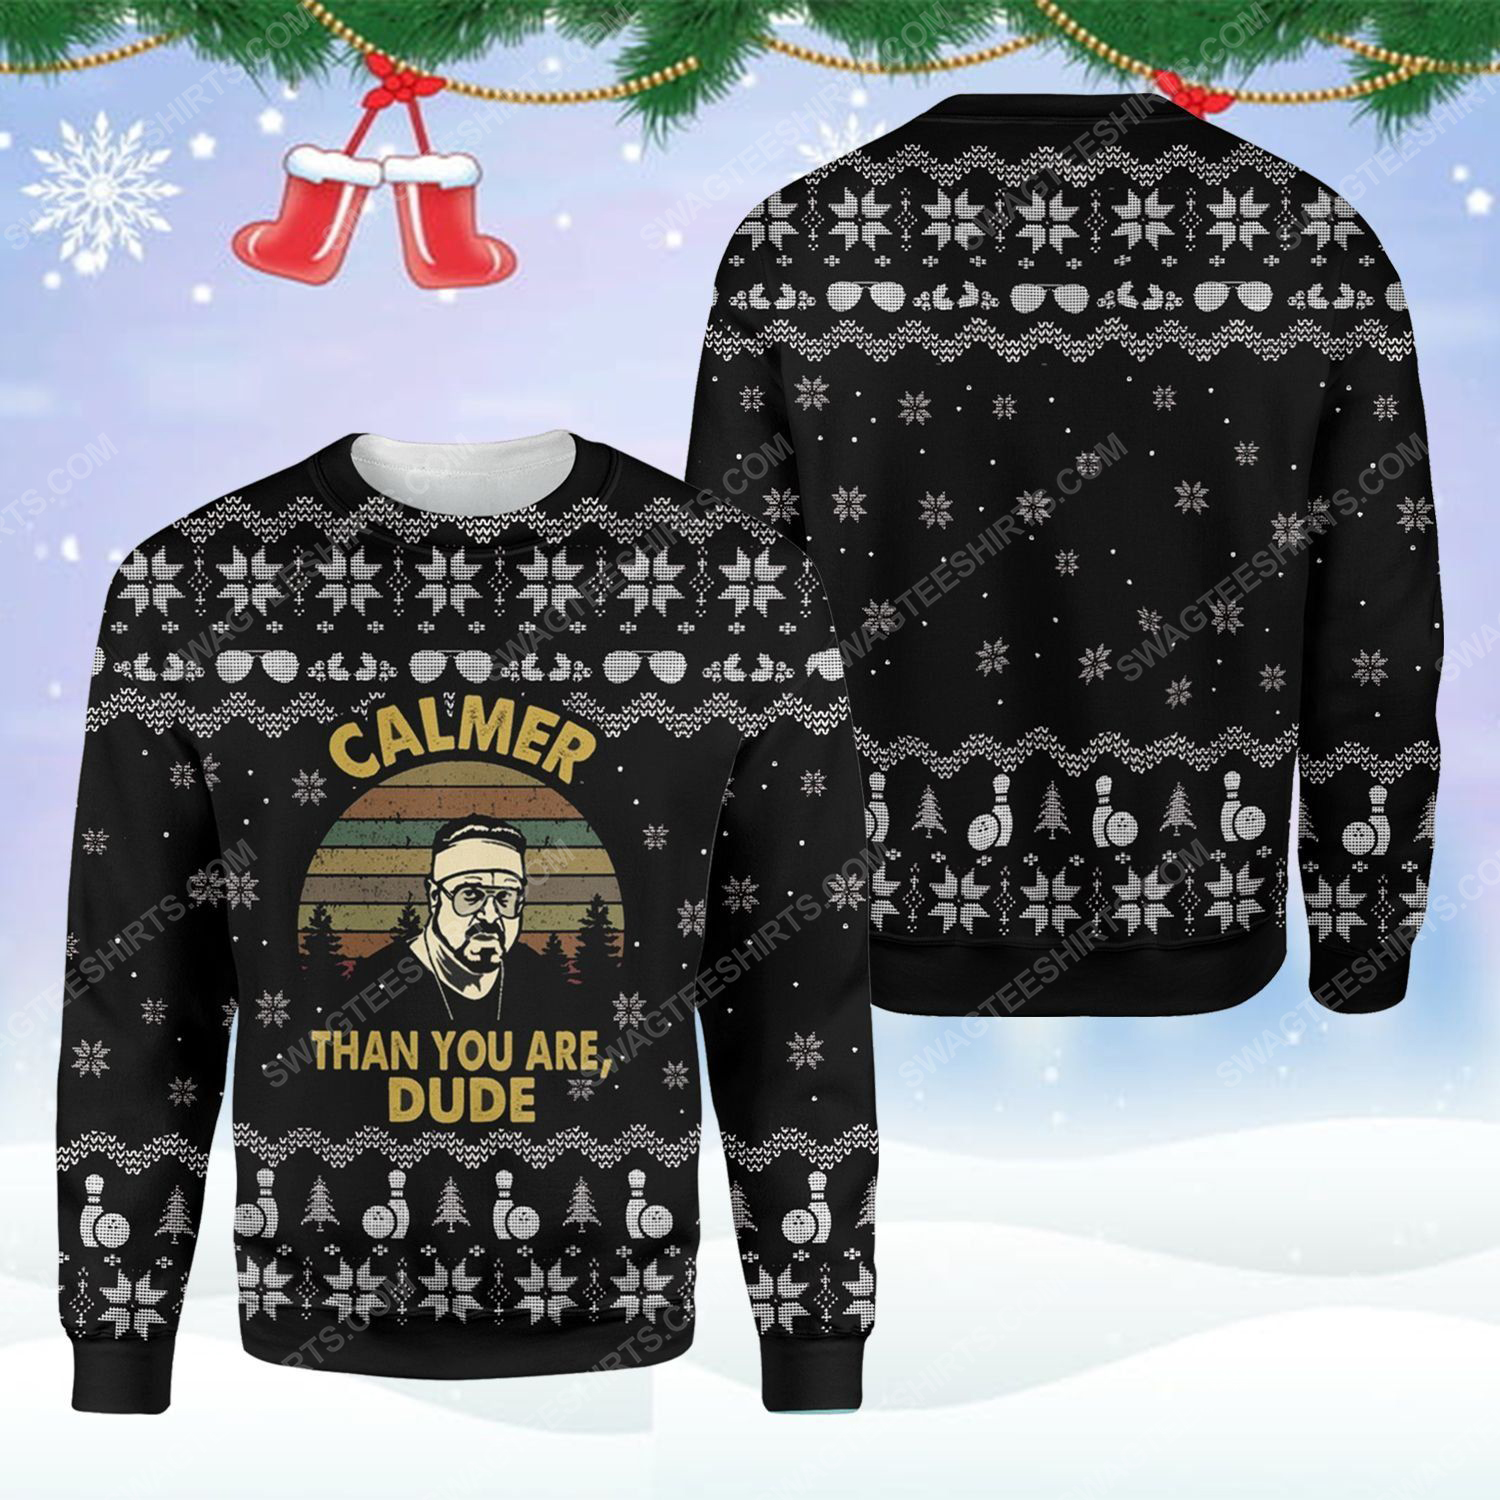 The big lebowski calmer than you are dude ugly christmas sweater - Copy (3)